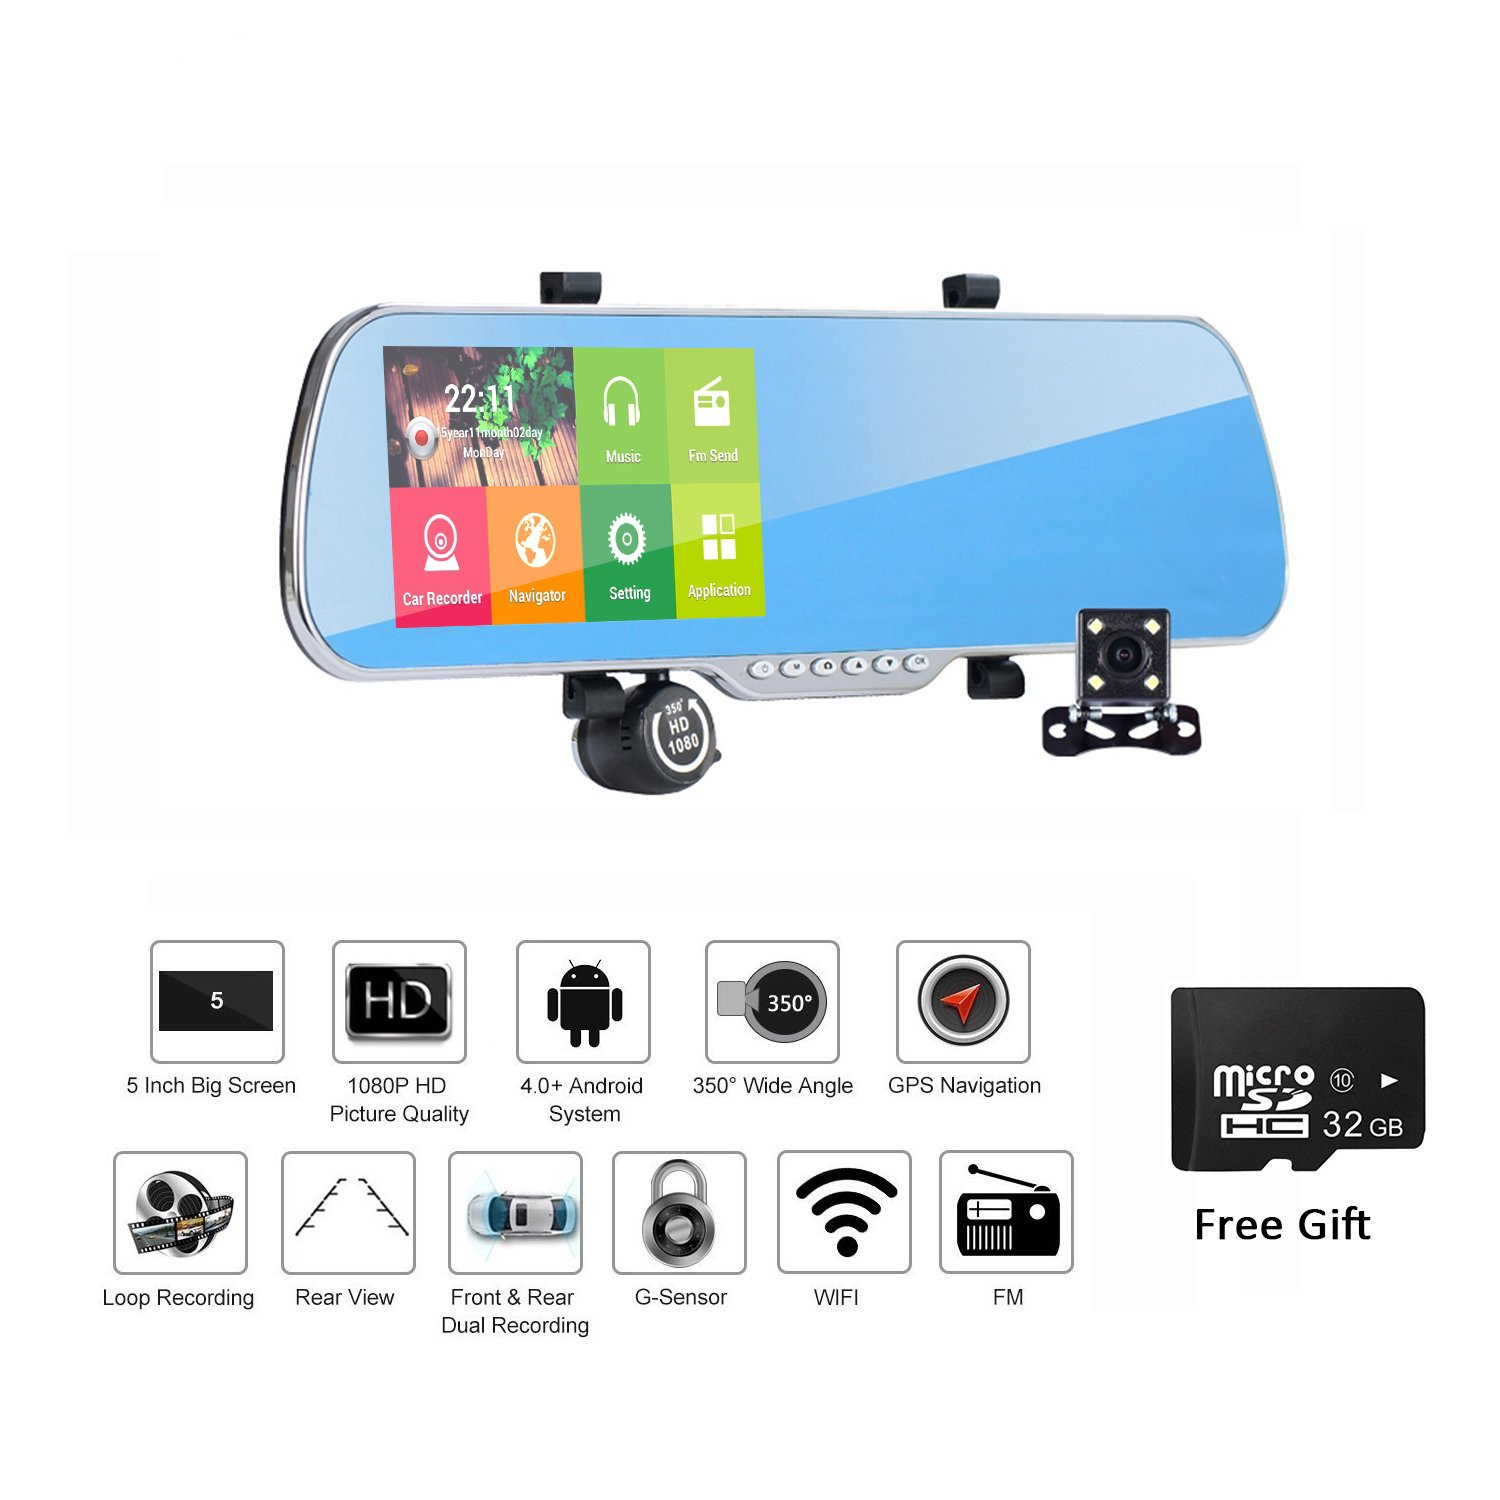 Dash Cam Rear View Mirror,Rear View Mirror Rotate  Dash Cam Android FHD 1080P Dual Lens Car Camera 5 Inch Touch Screen With GPS WiFi FM 32GB Card